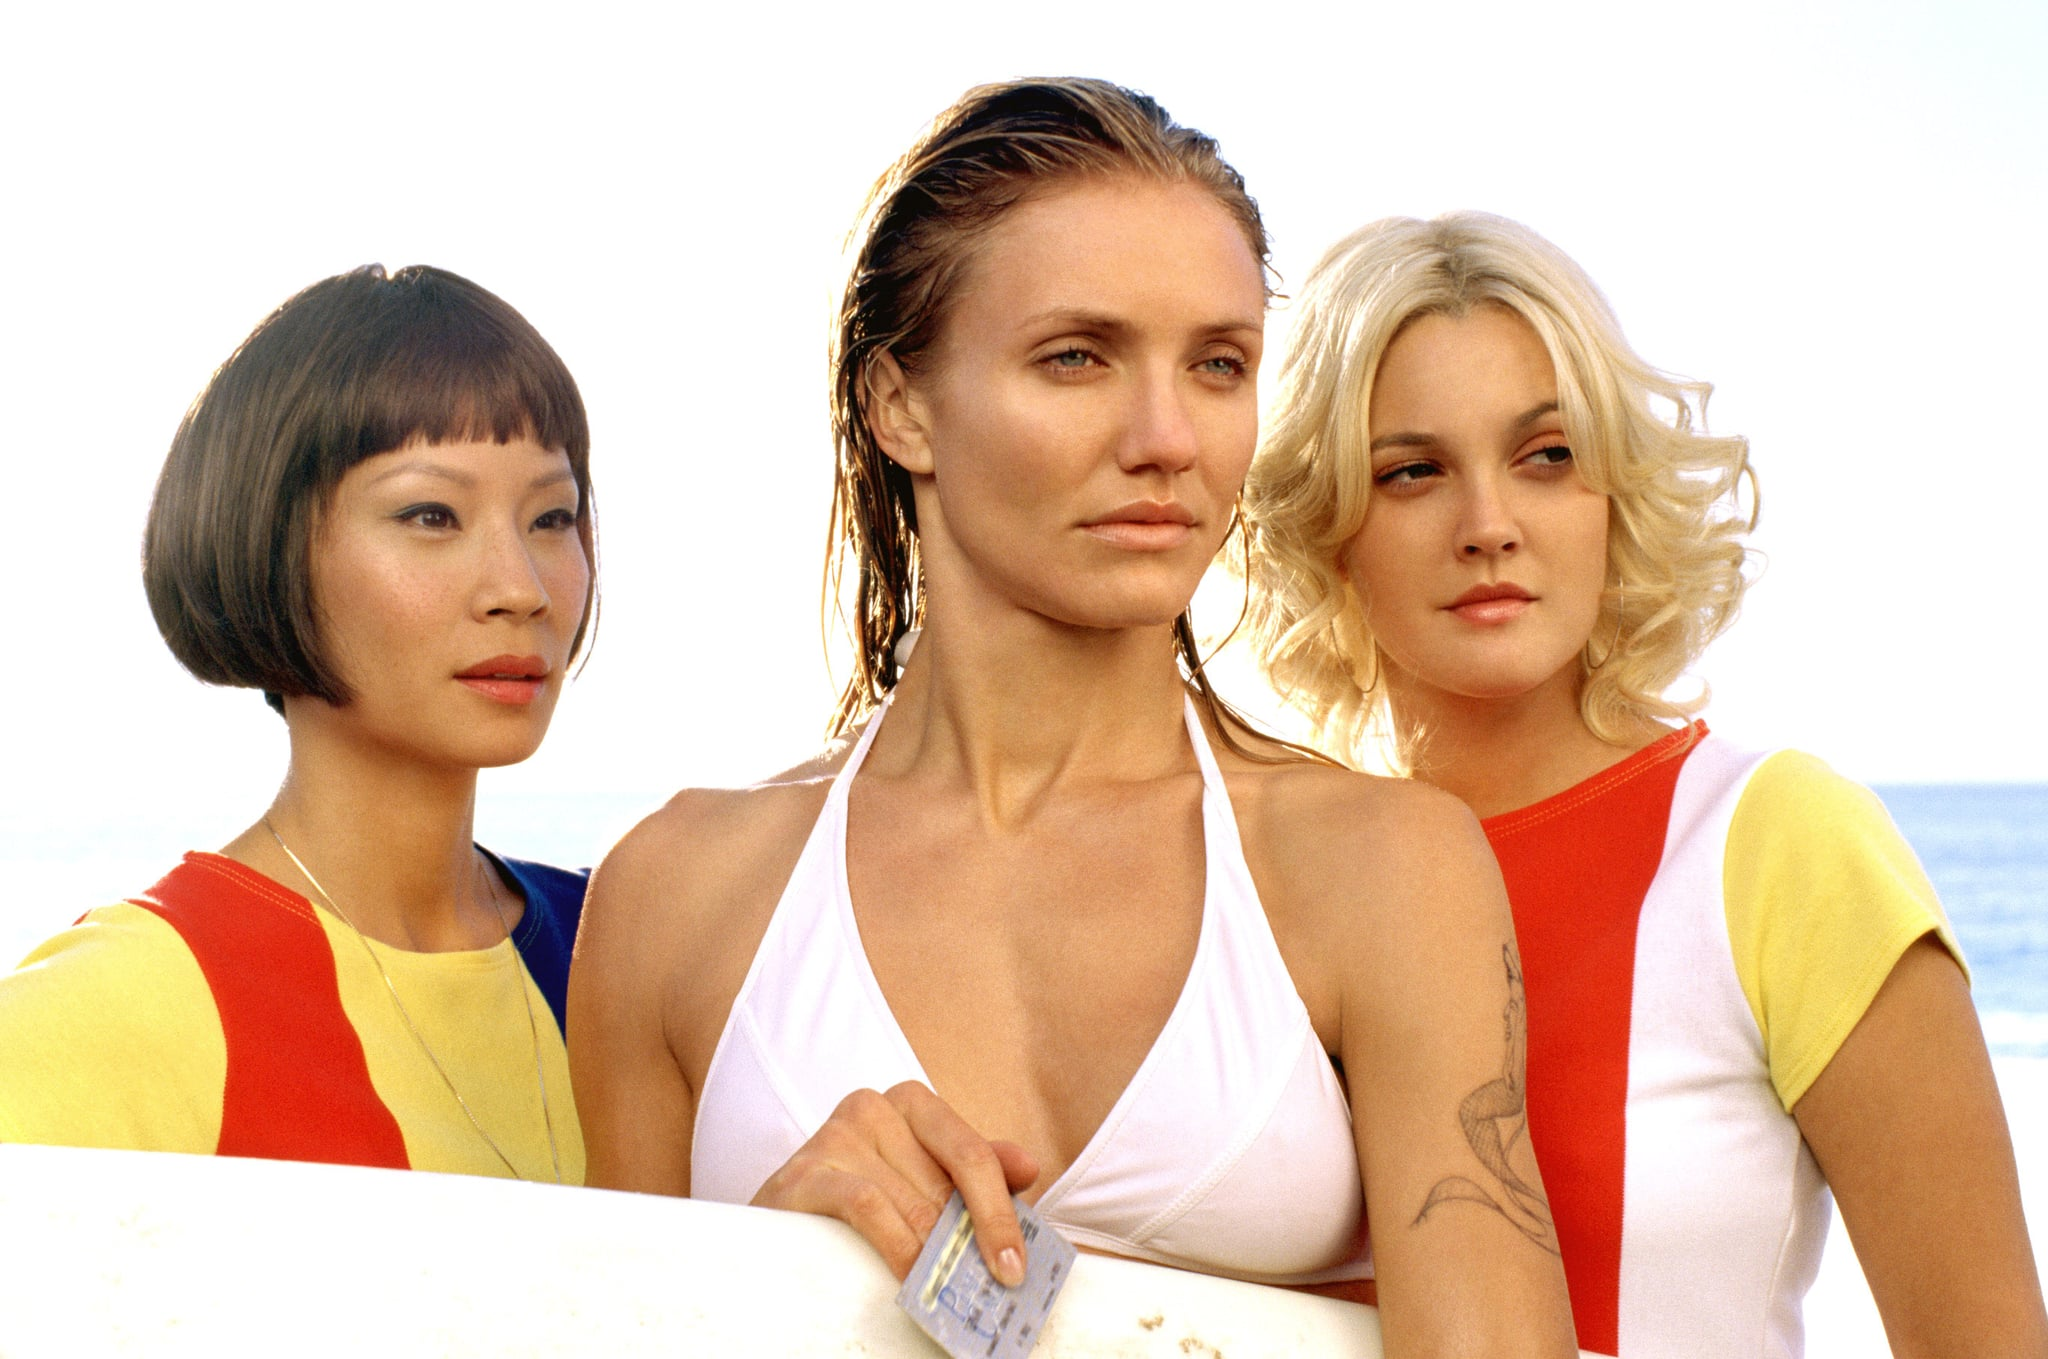 CHARLIE'S ANGELS: FULL THROTTLE, Lucy Liu, Cameron Diaz, Drew Barrymore, 2003, (c) Columbia/courtesy Everett Collection